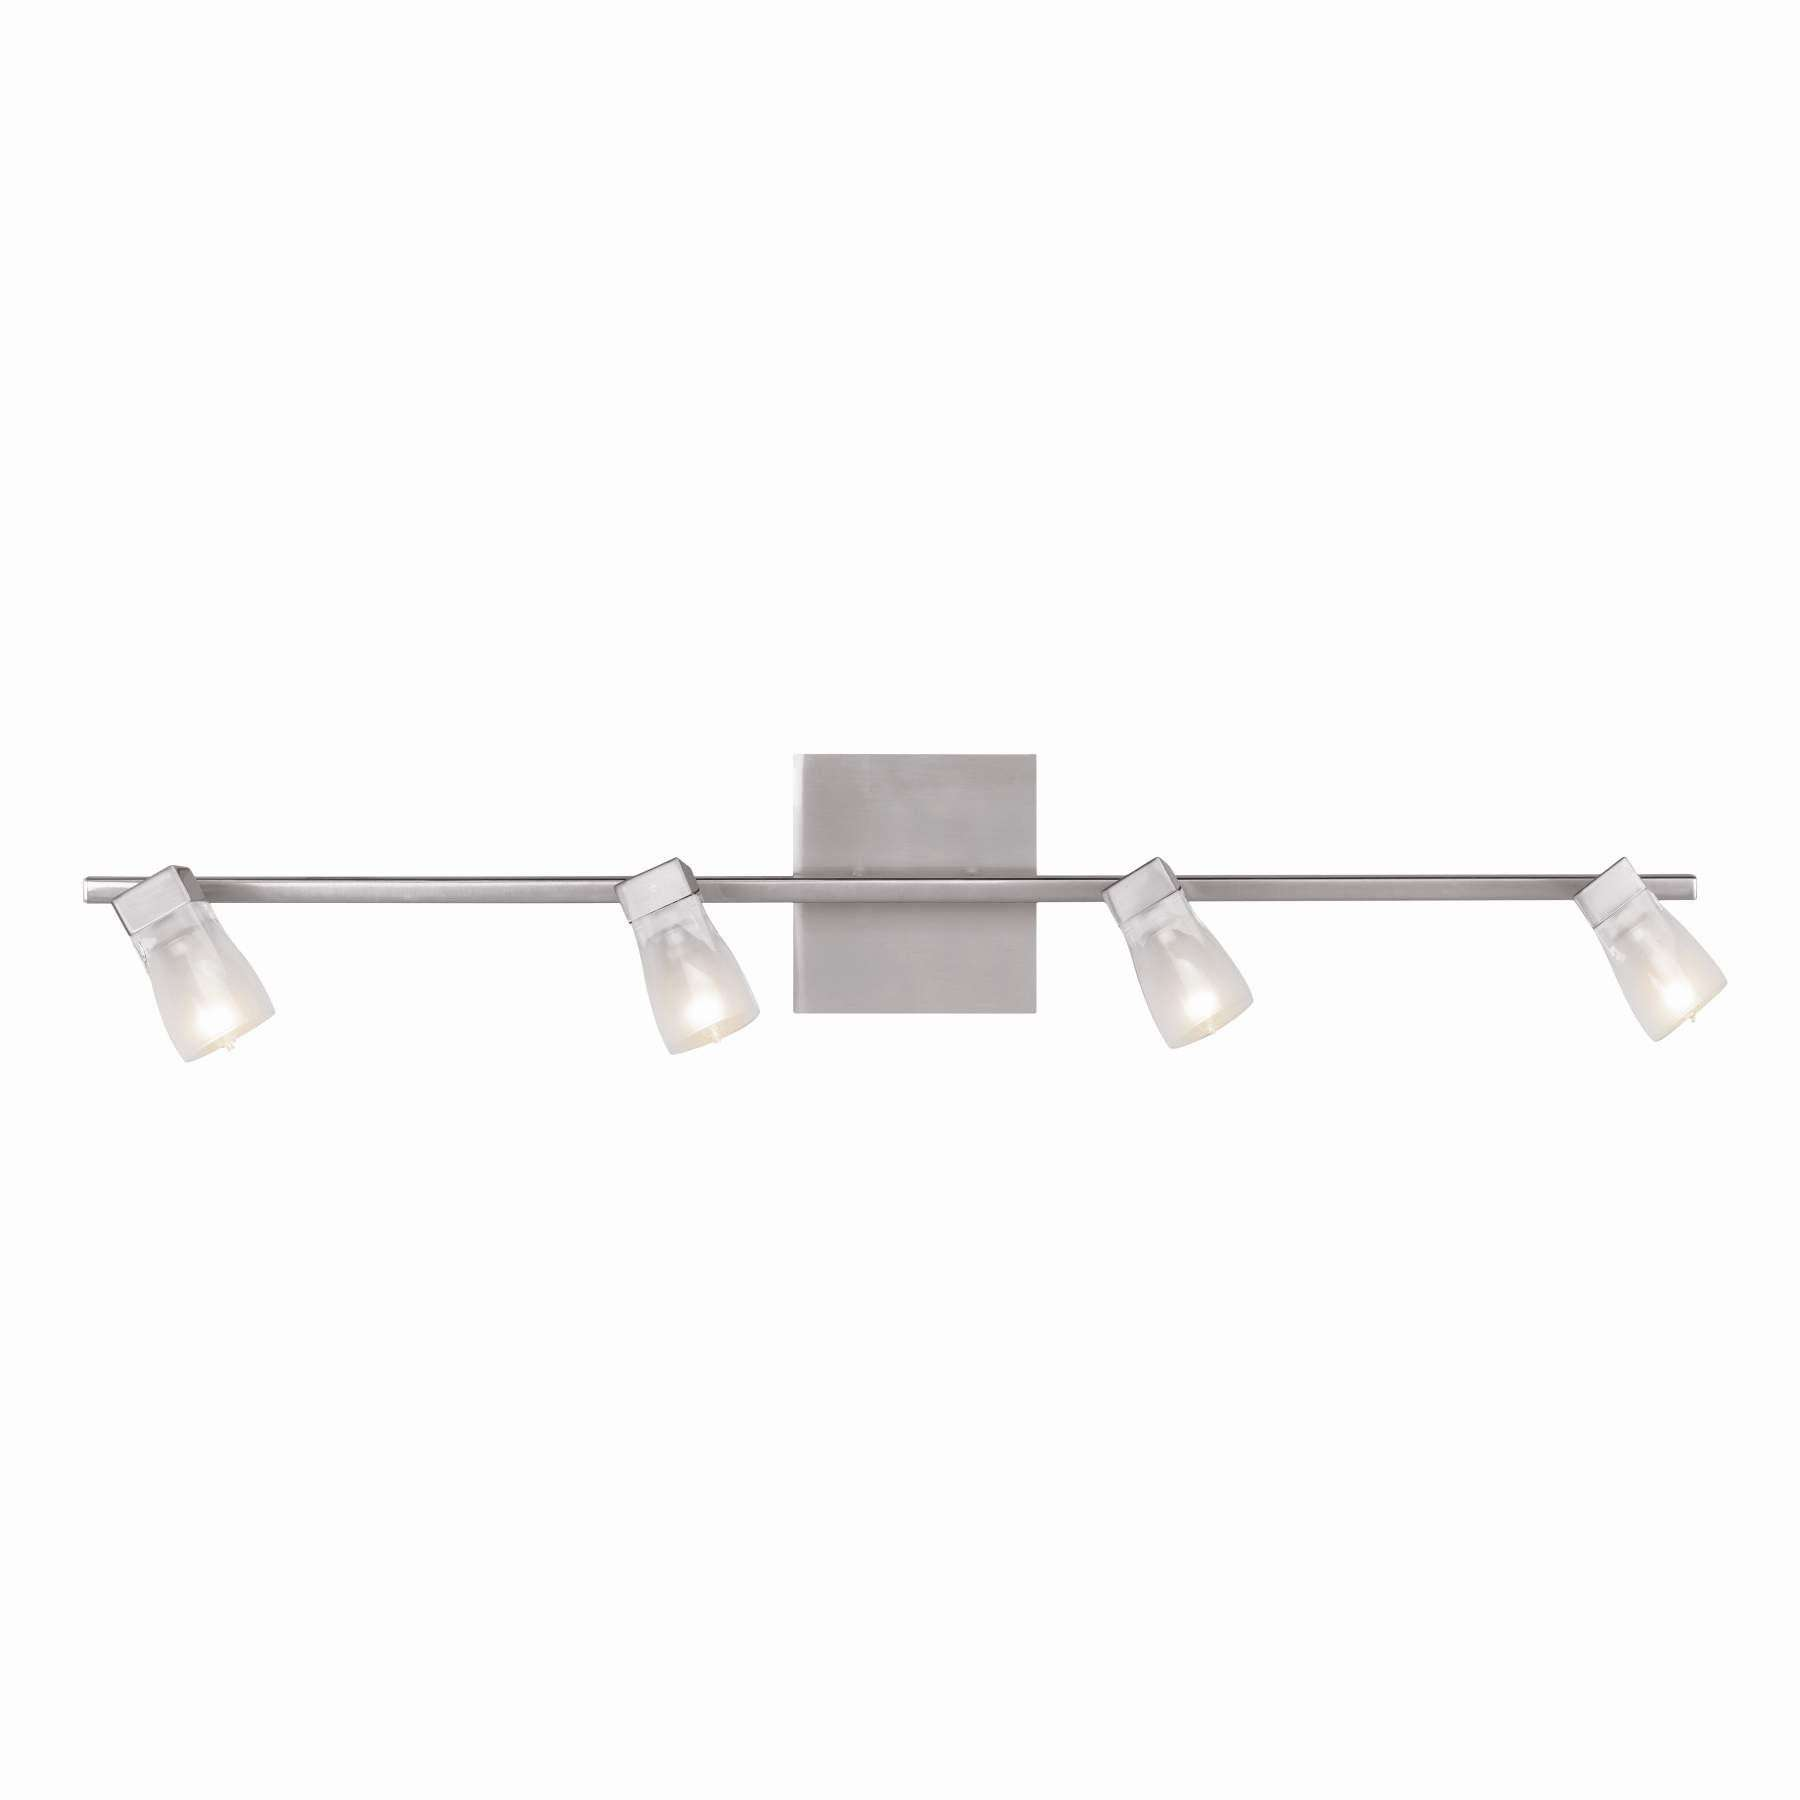 Access Lighting 52144-BS/FCL Ryan Bar Wall Fixture in Brushed Steel finish with Inner Frosted Crystal glass